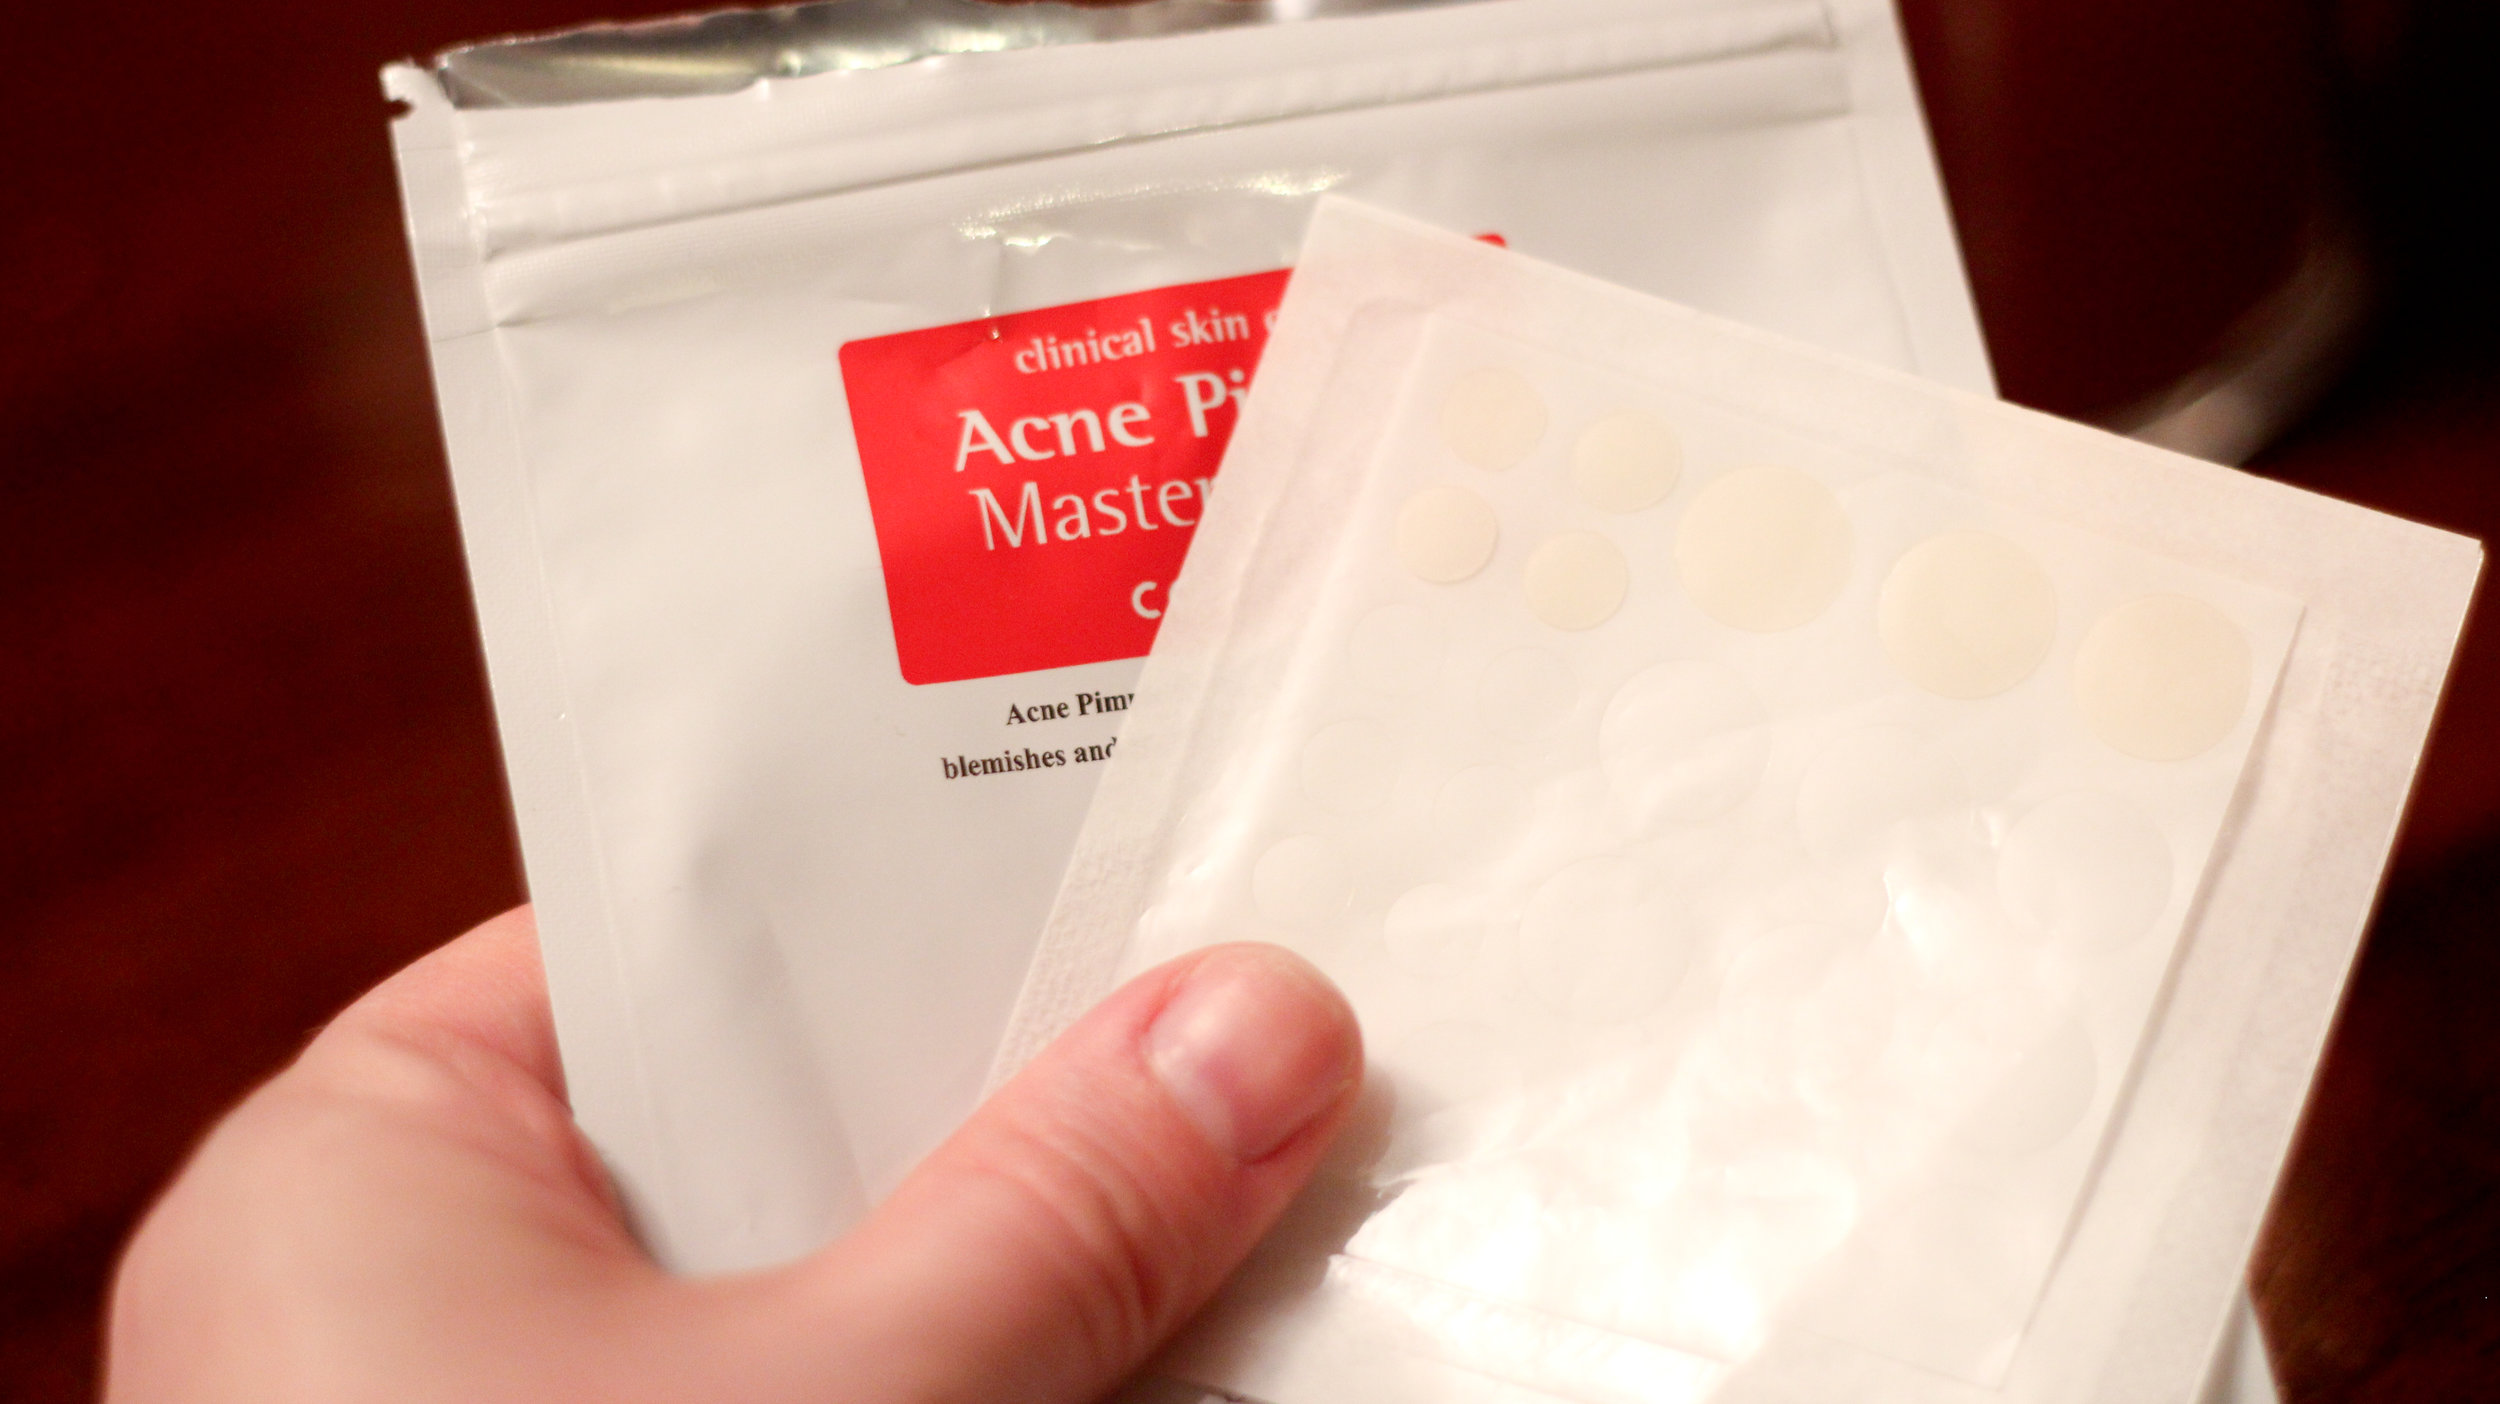 One envelope of Acne Pimple Master Patches by COSRX (partially used).